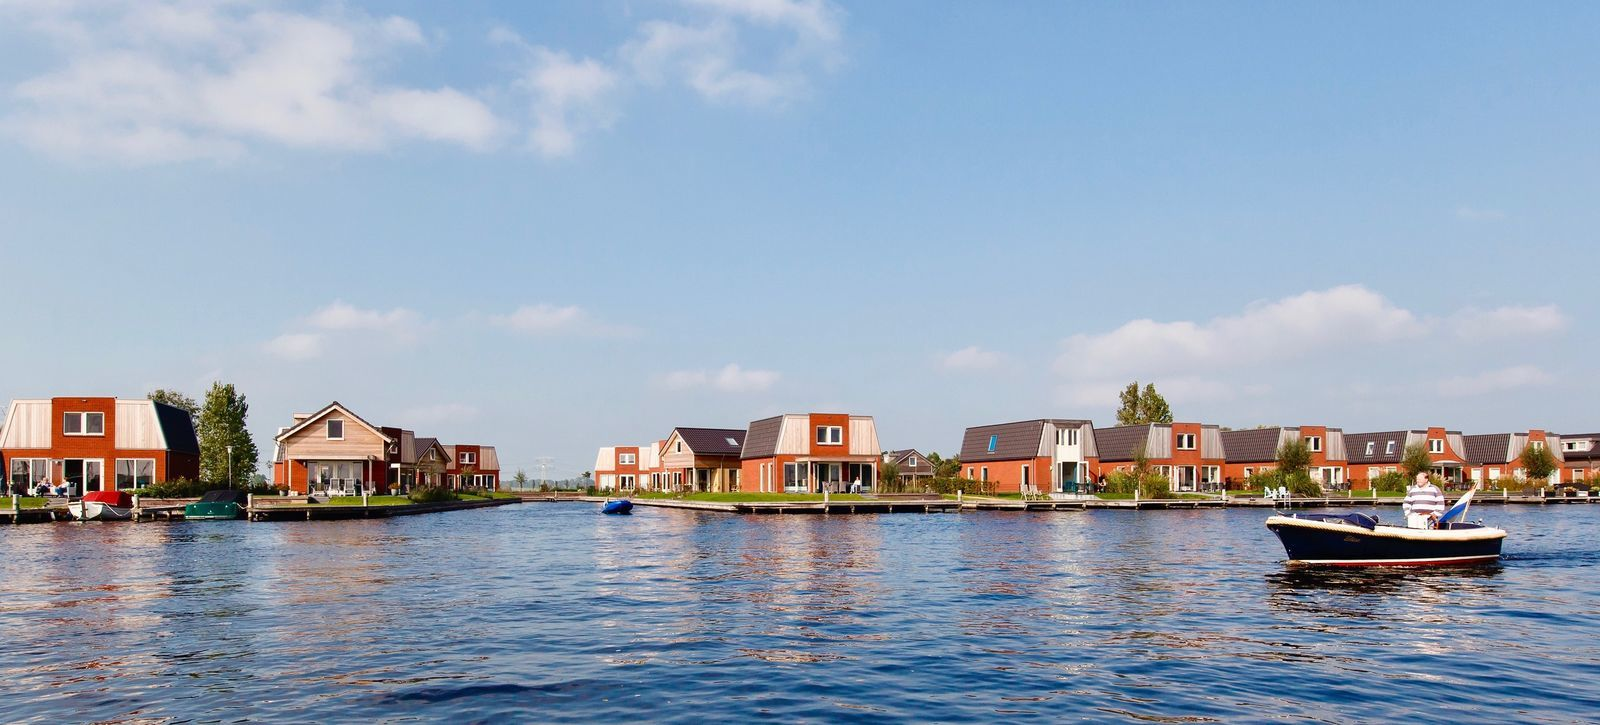 Holiday home Sneekermeer 4